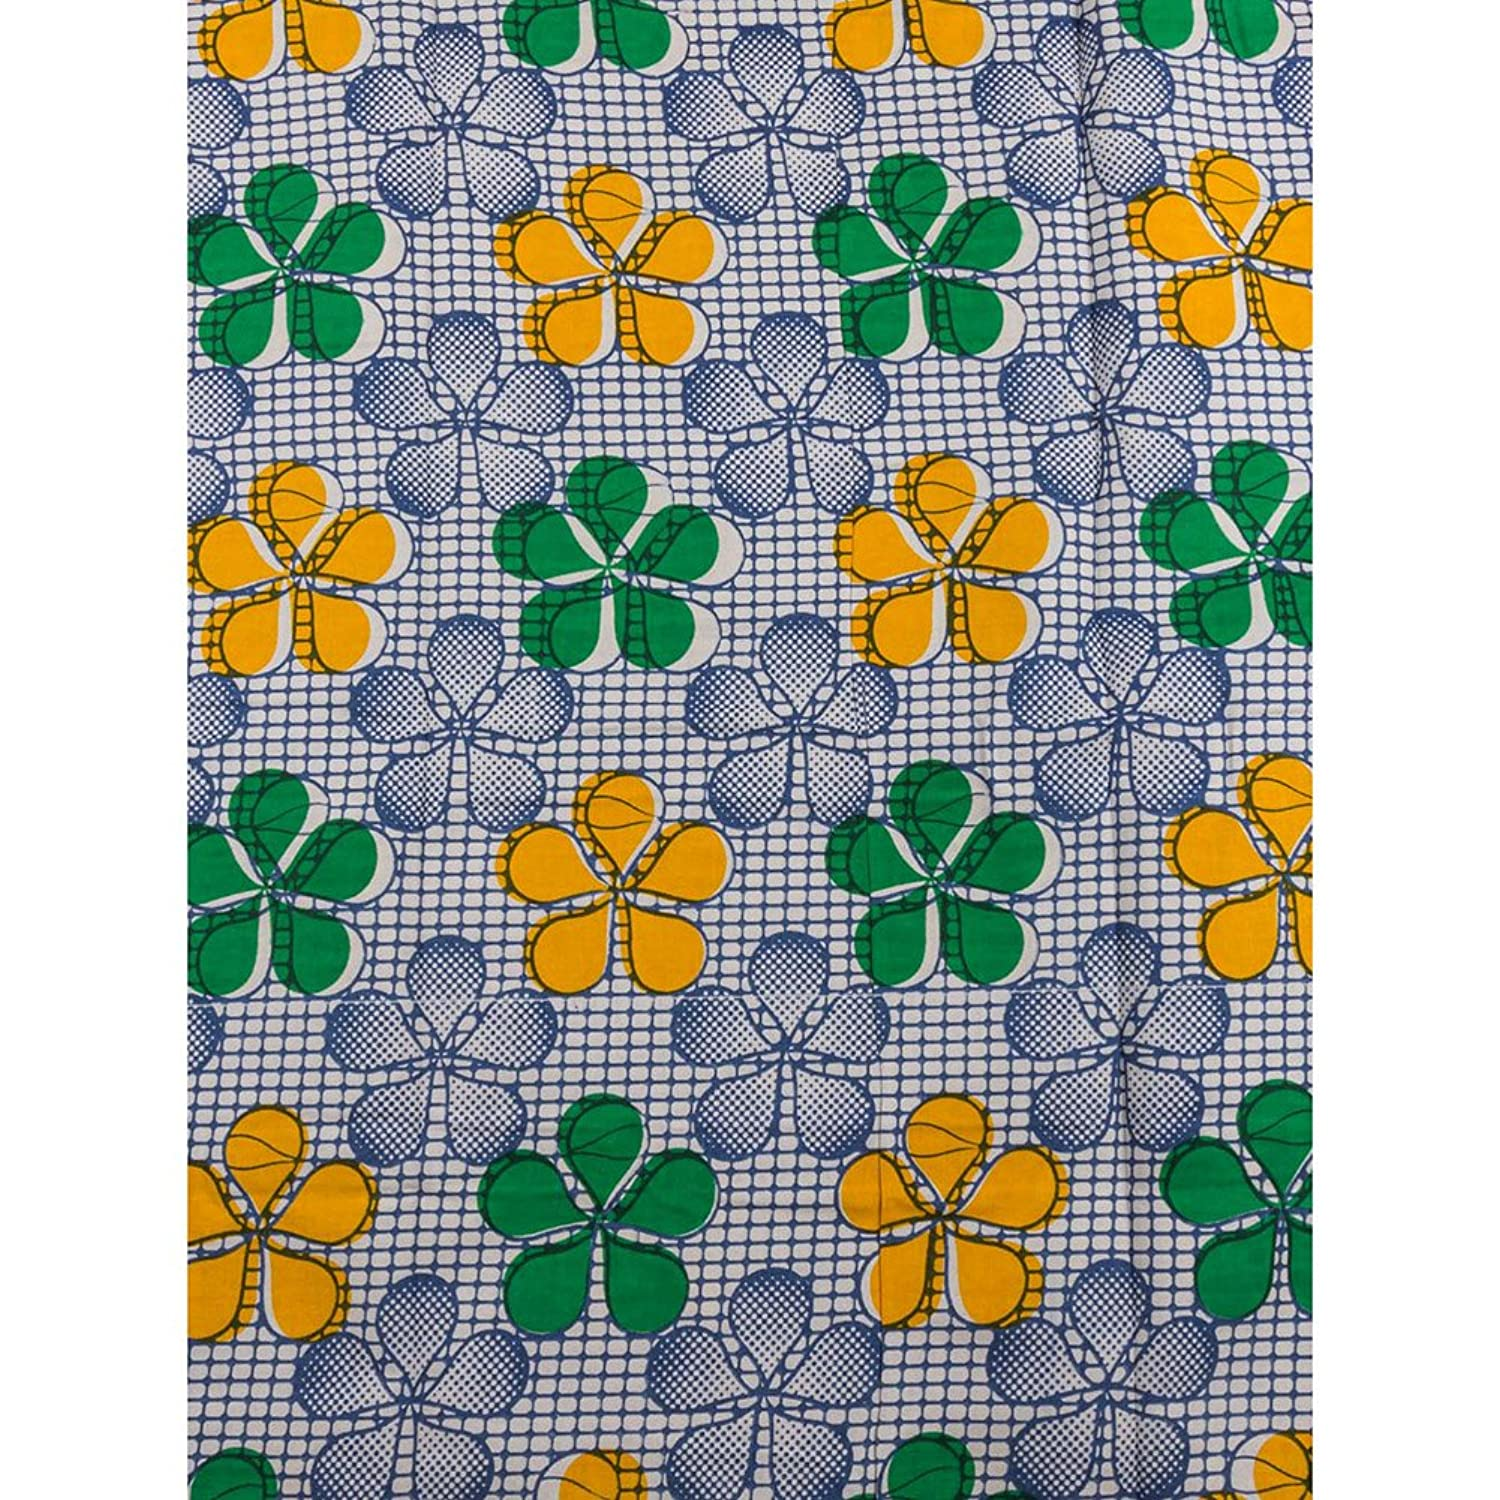 Premier Latest African Print Fabric Colorful Flower Cotton Material rw448004